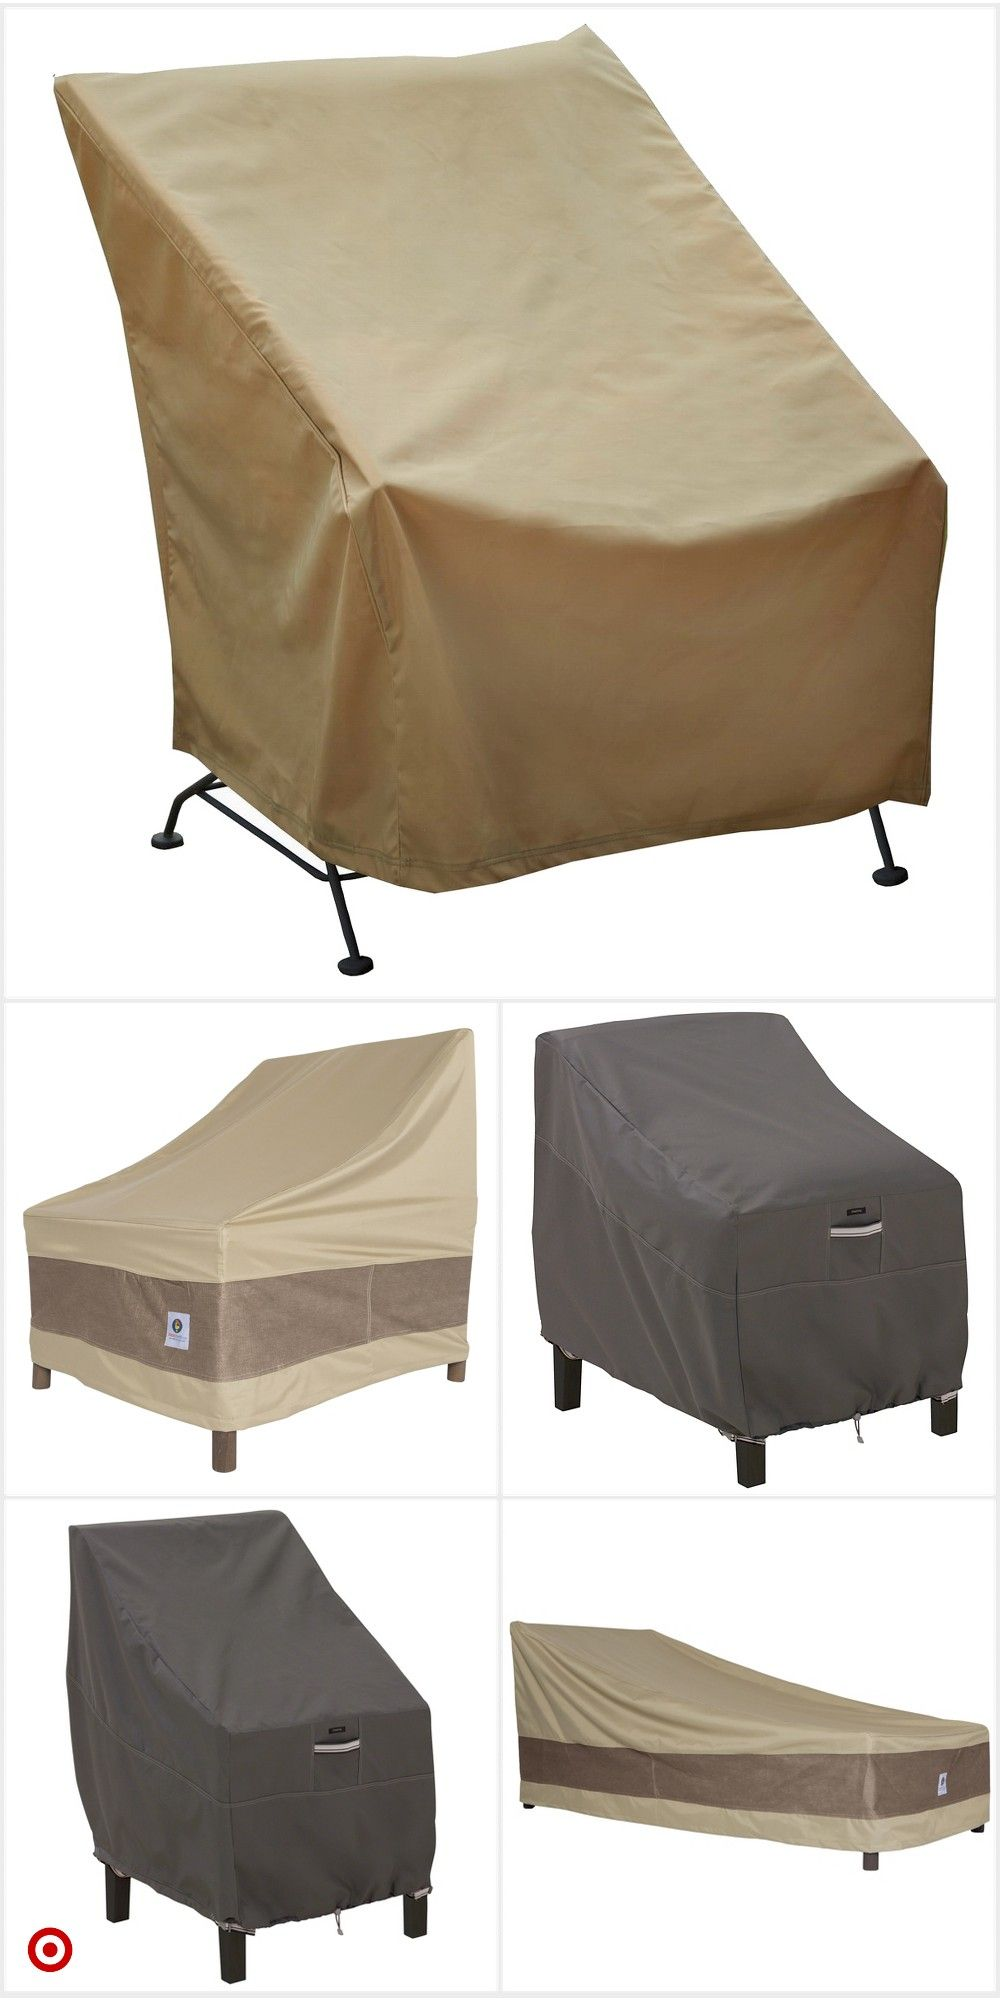 Shop Target For Patio Table And Chair Cover You Will Love At Great Low Prices Free Shipping On Orders Of 3 Patio Chair Covers Covered Patio Patio Swing Cover